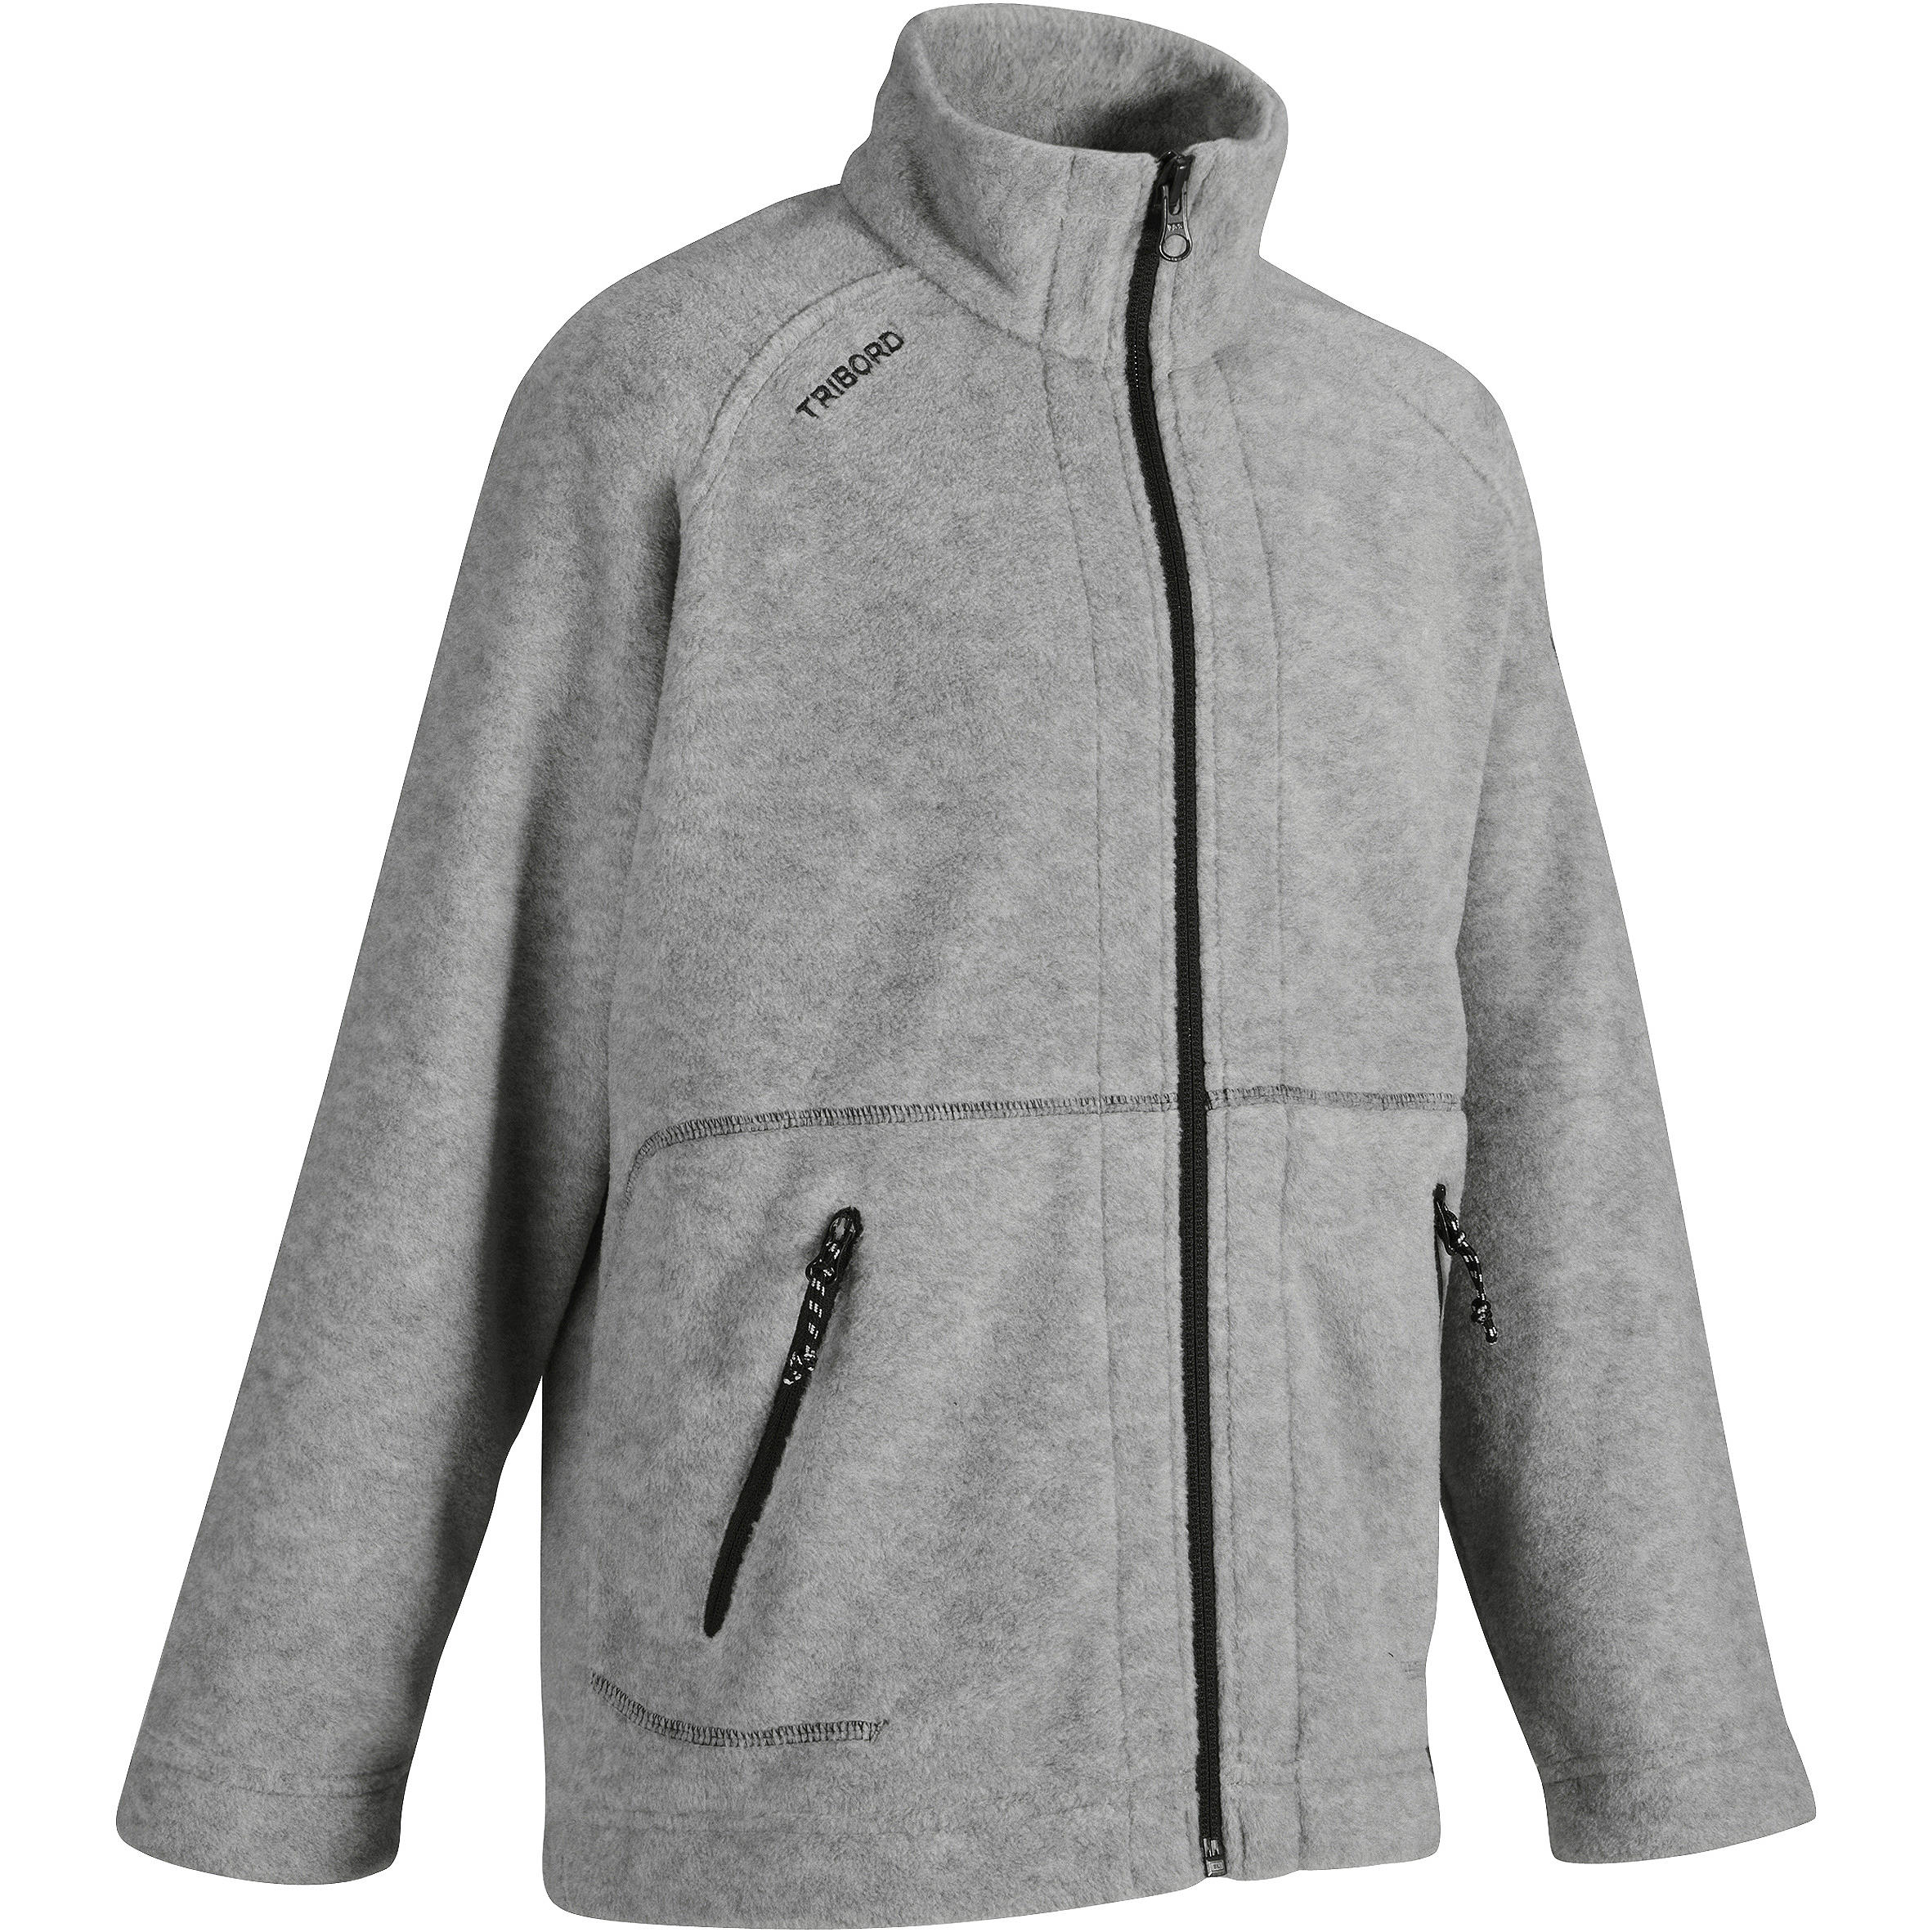 100 Children's Sailing Fleece Jacket - Grey